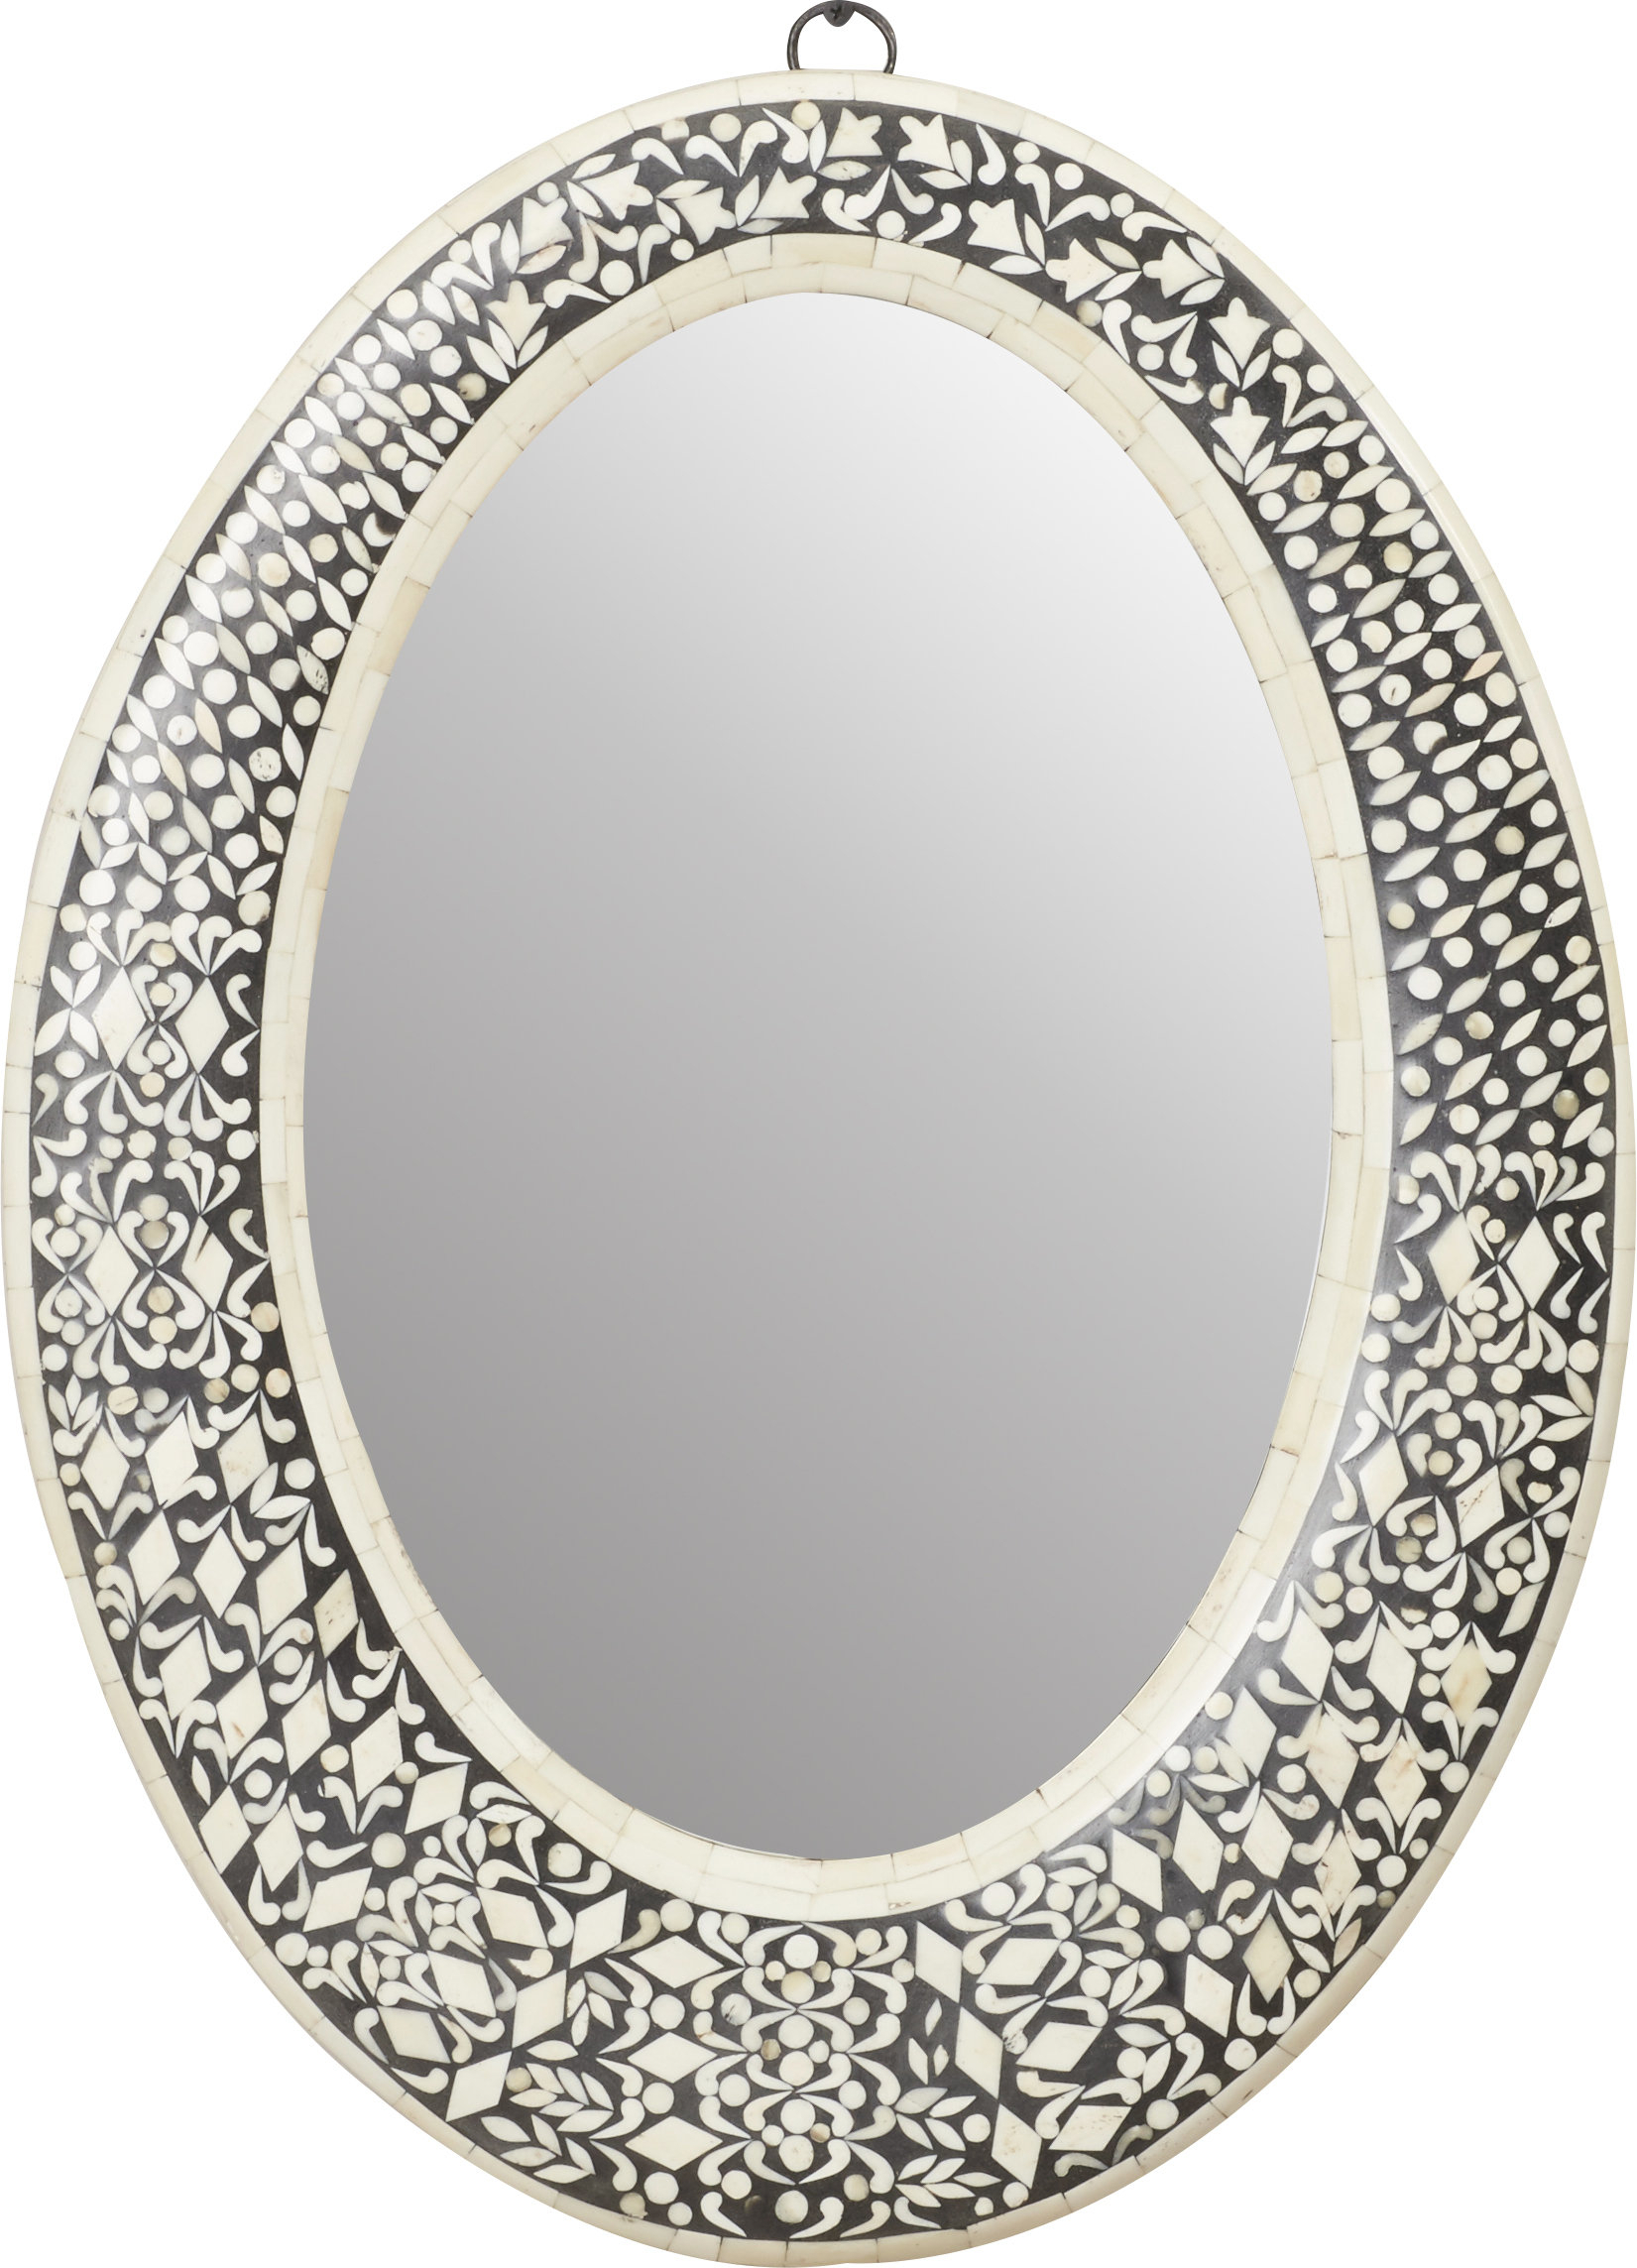 Traditional Oval Wall Mirror With Regard To Peetz Modern Rustic Accent Mirrors (Image 29 of 30)